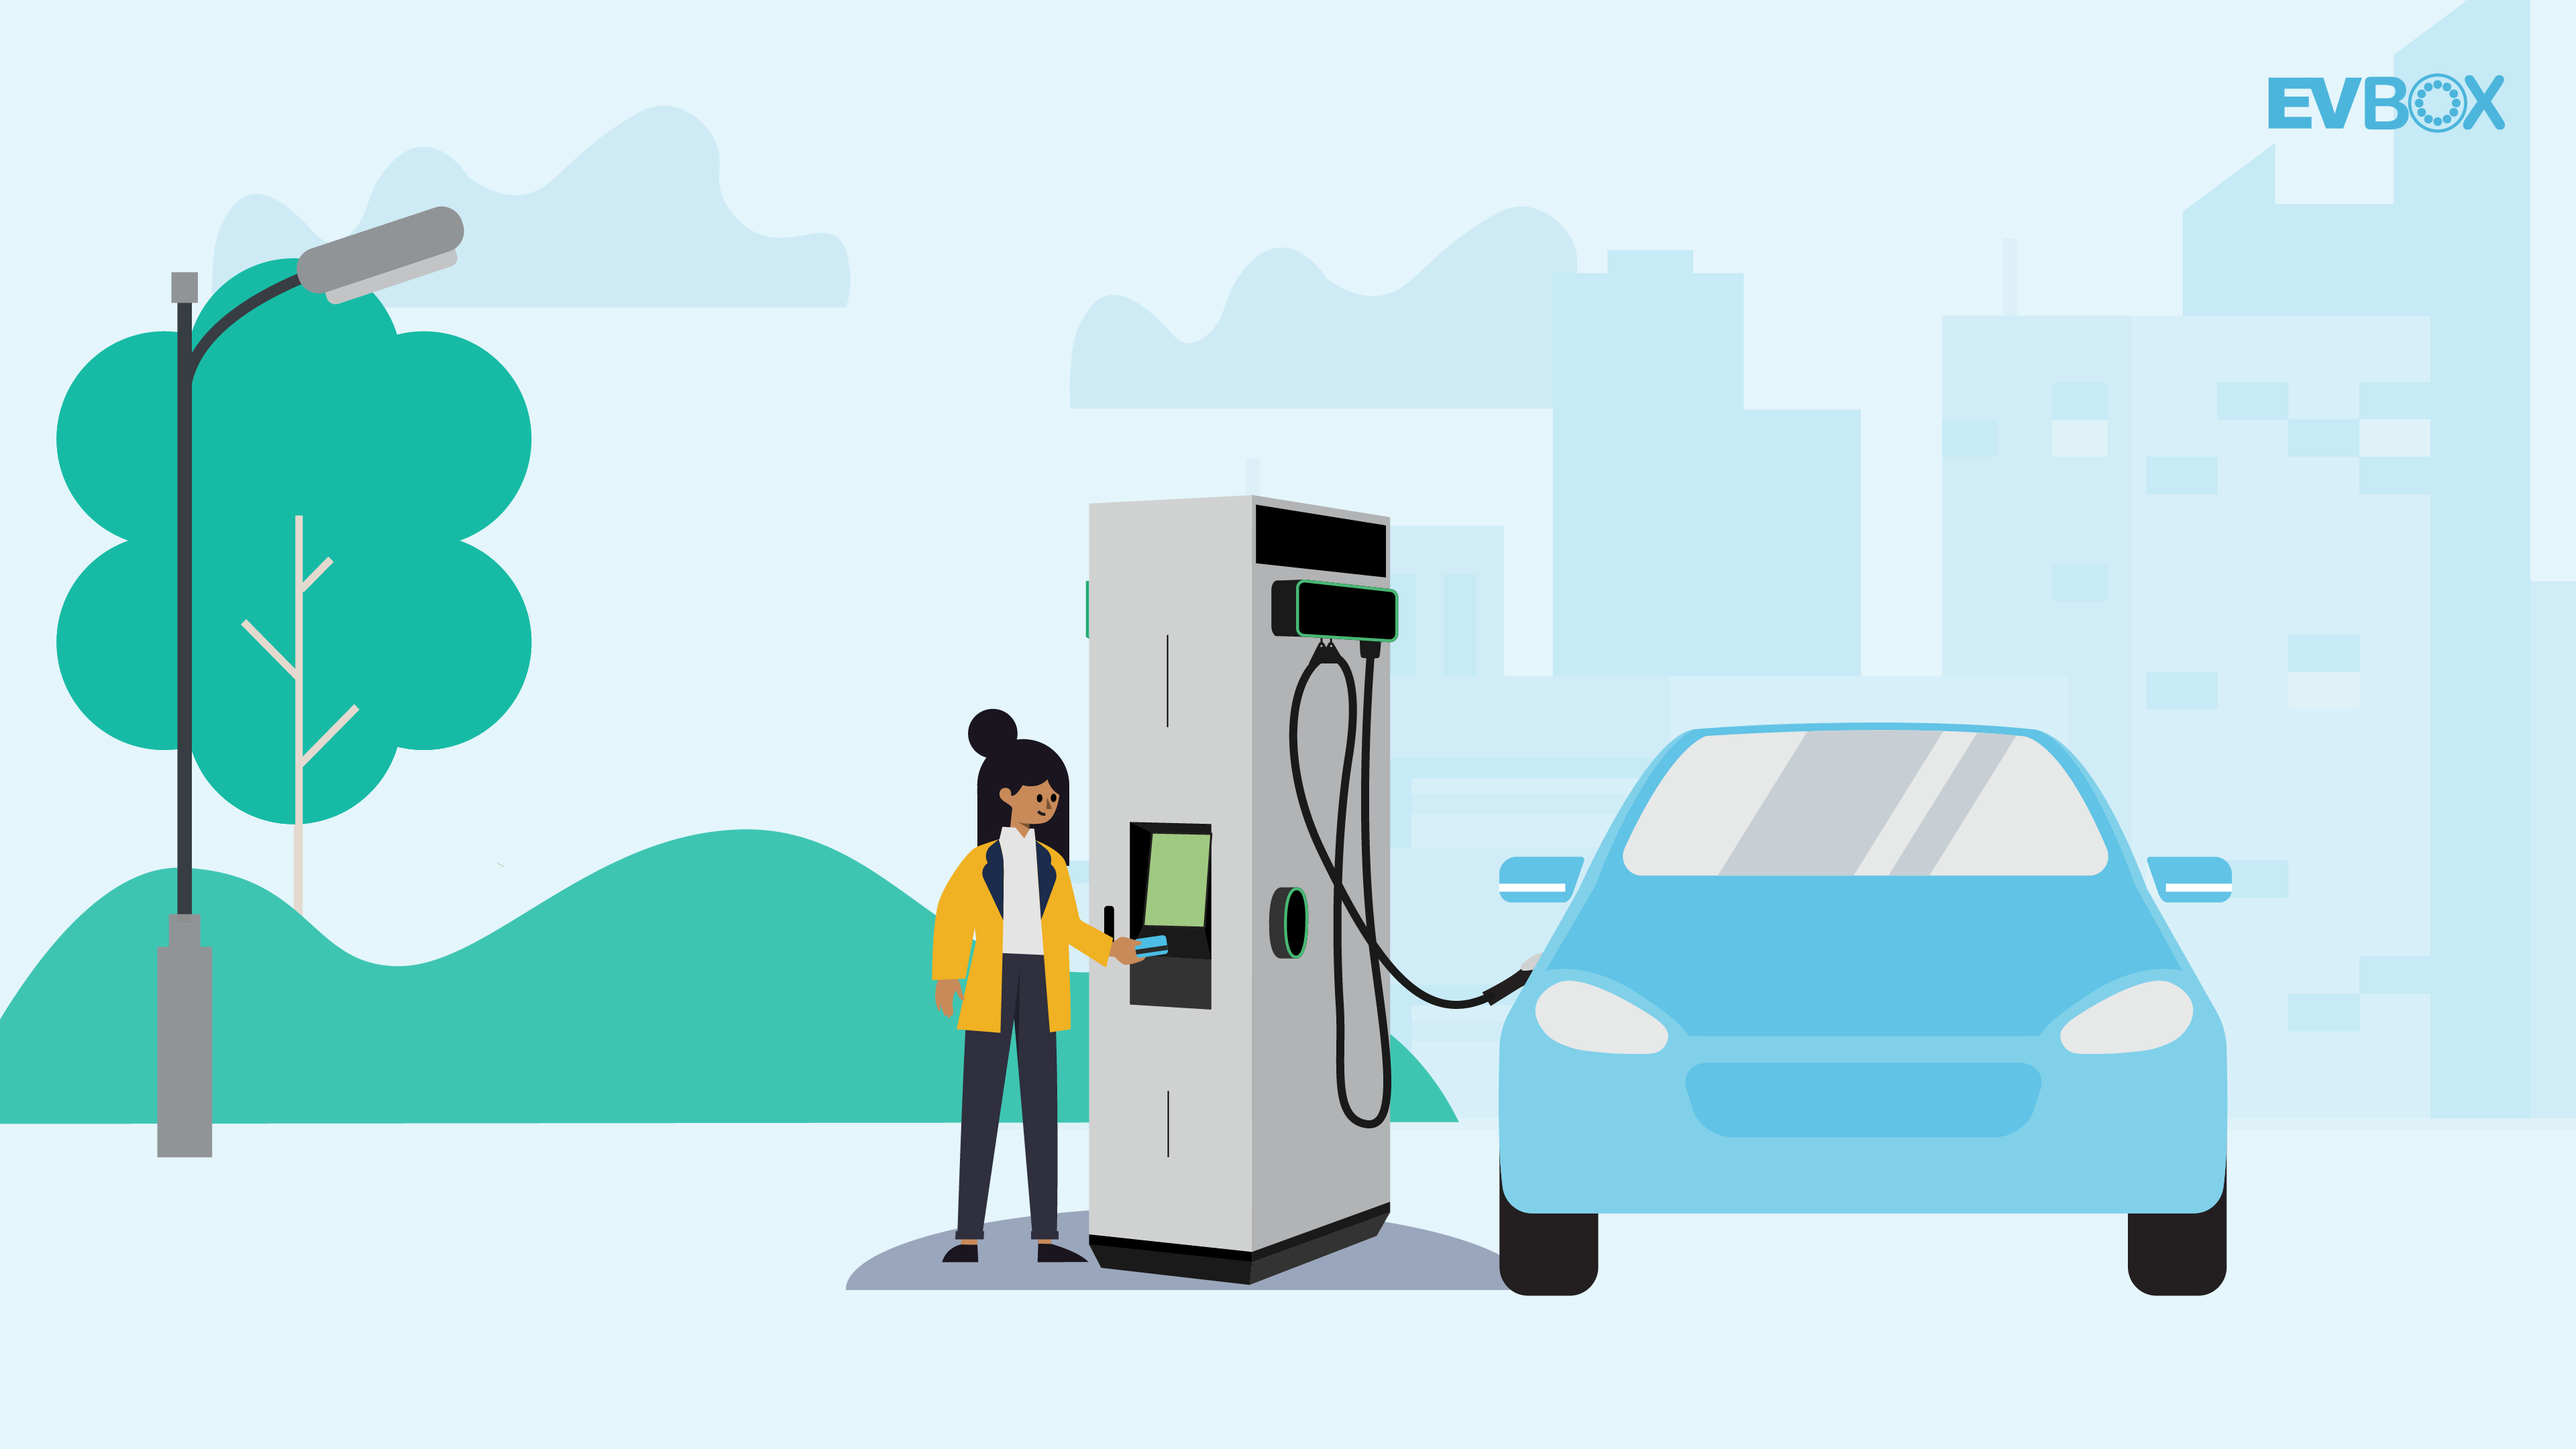 A visual of a woman paying for her EV charging session